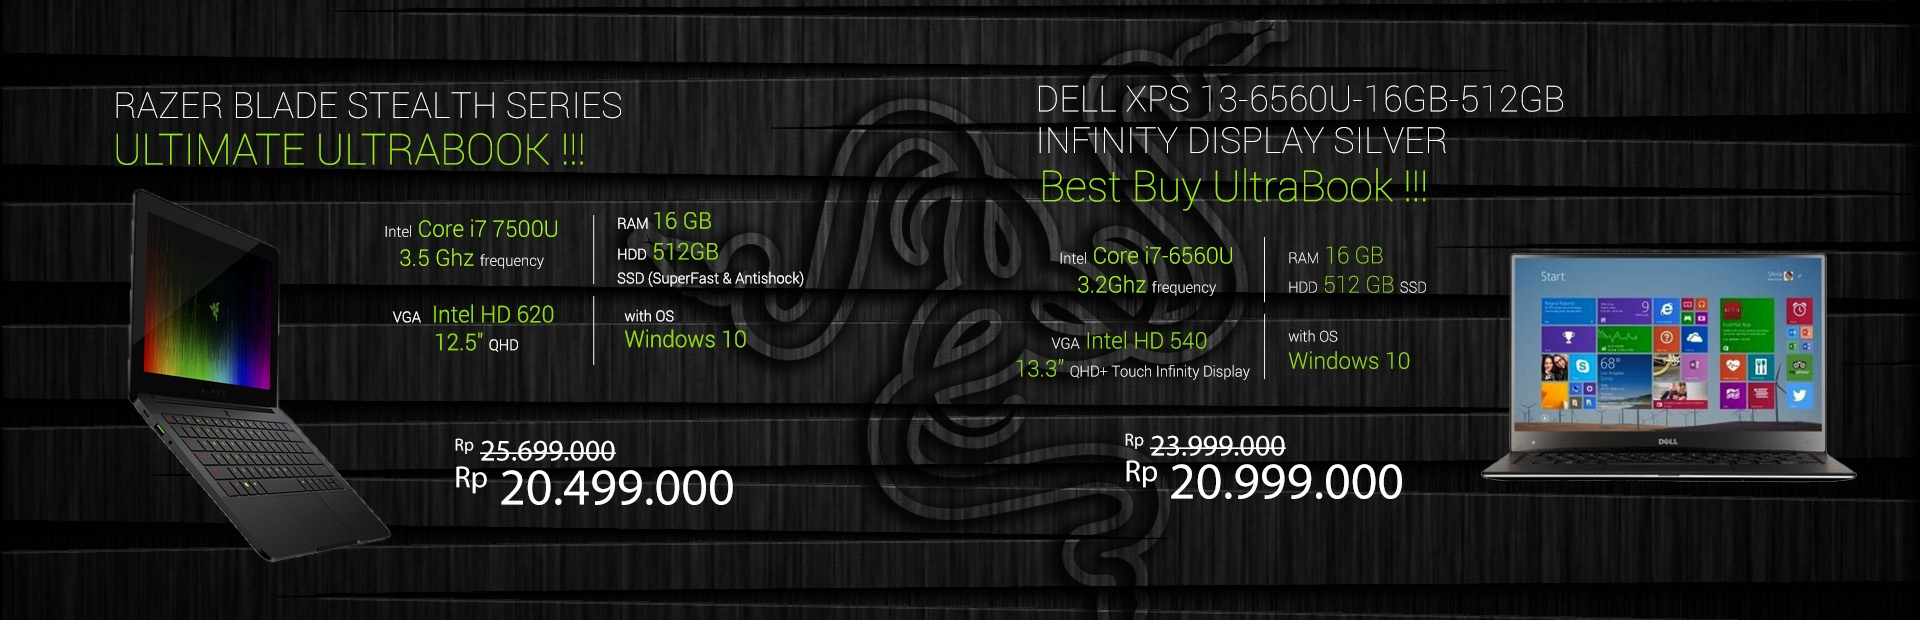 RAZER Blade Stealth Series - Limited Edition - DELL XPS 13-6560U-16GB-512GB Infinity Display Silver